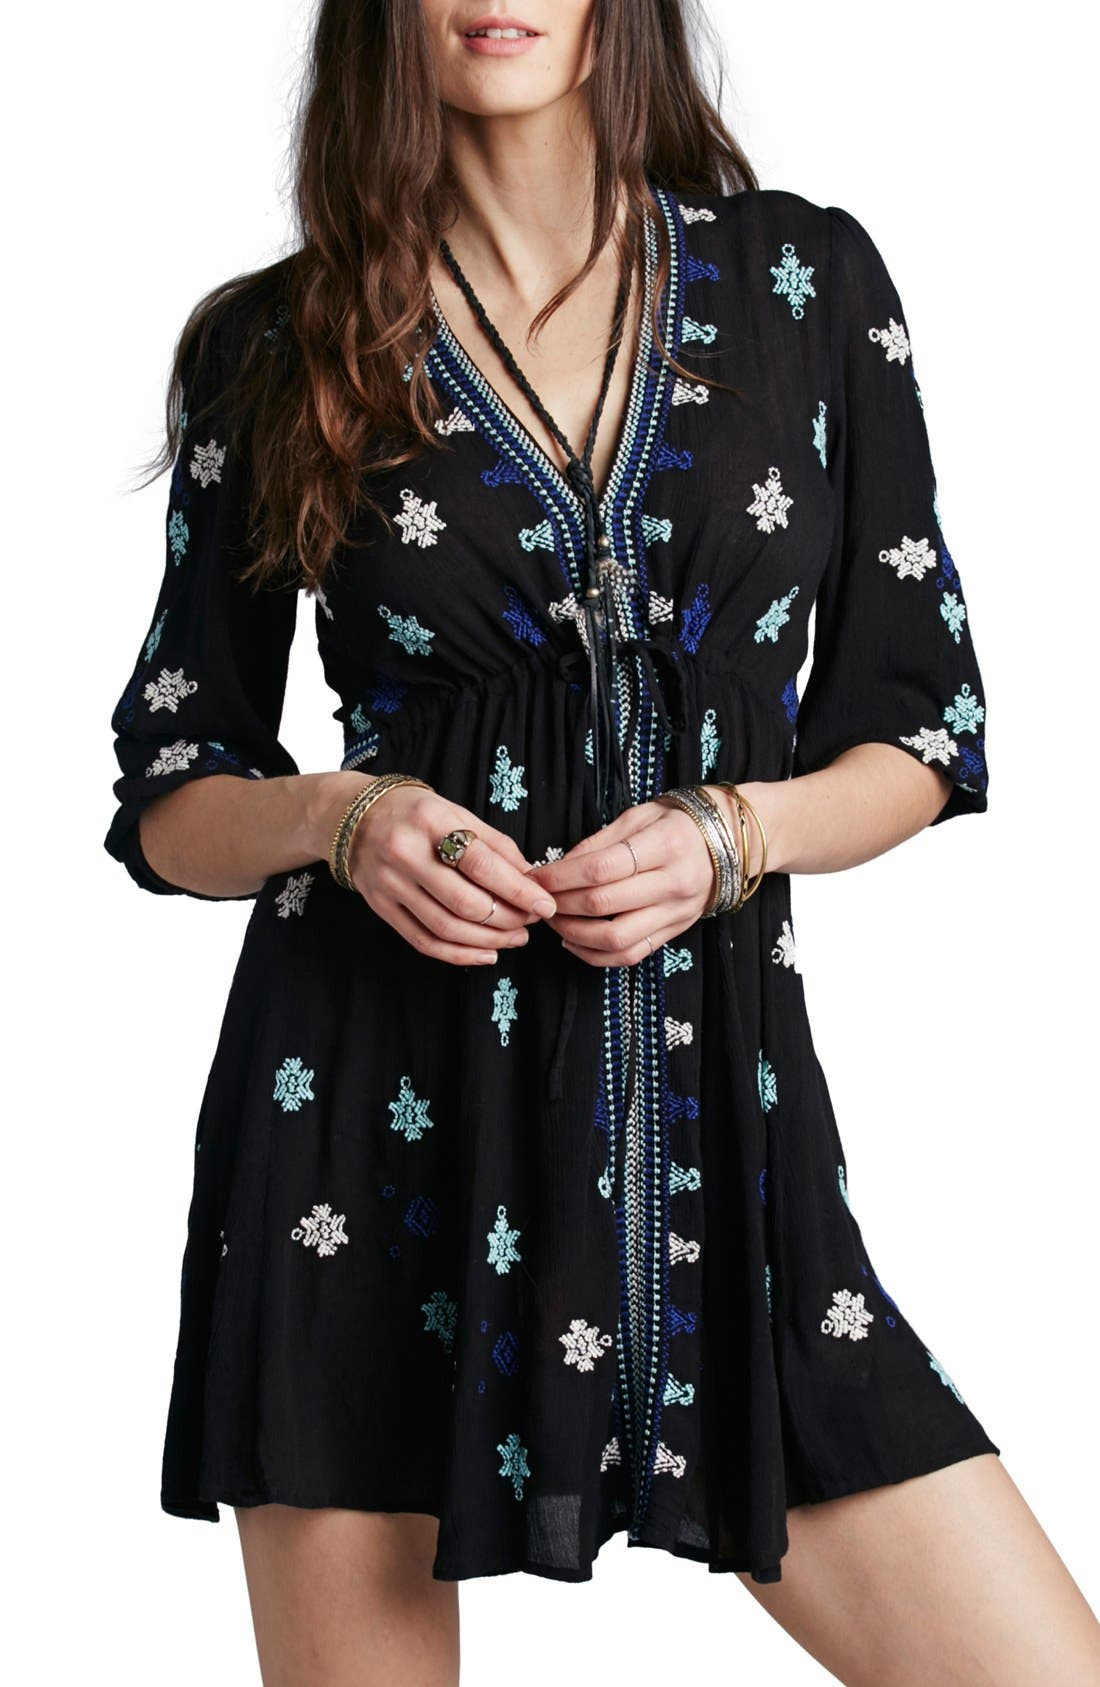 FREE PEOPLE Star Gazer Embroidered Tunic Dress